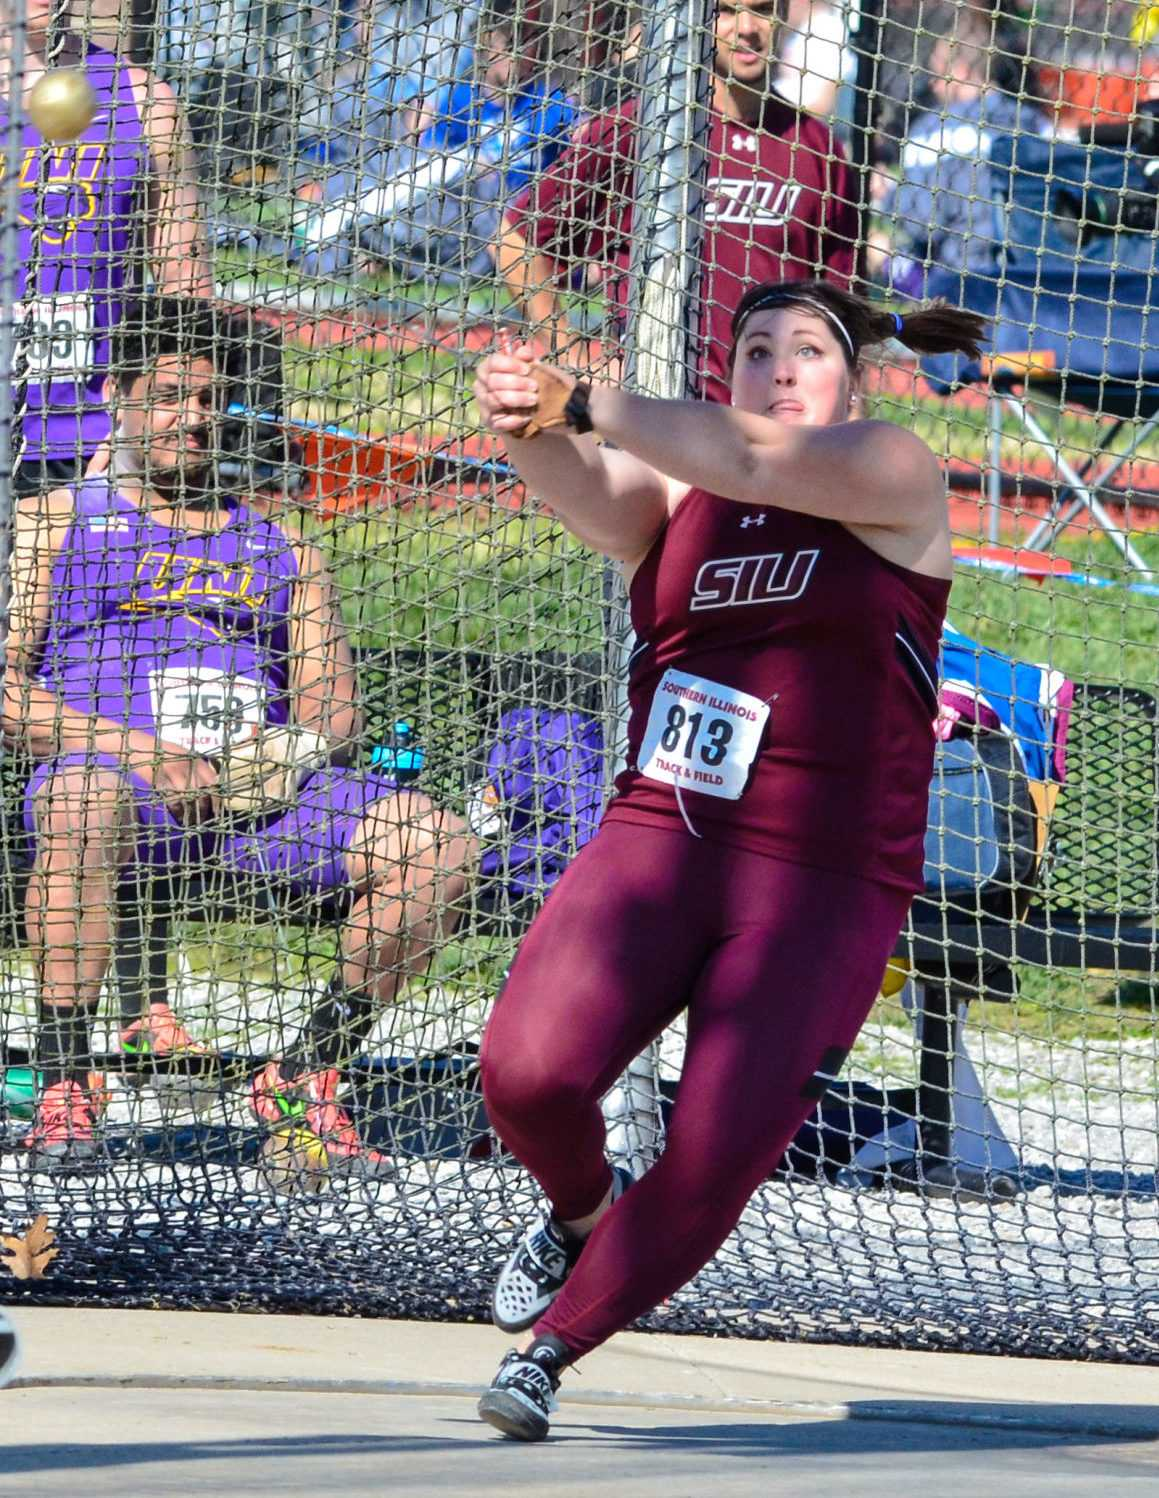 Then-senior thrower DeAnna Price throws the hammer throw March 26 at the Bill Cornell Spring Classic. (DailyEgyptian.com file photo)